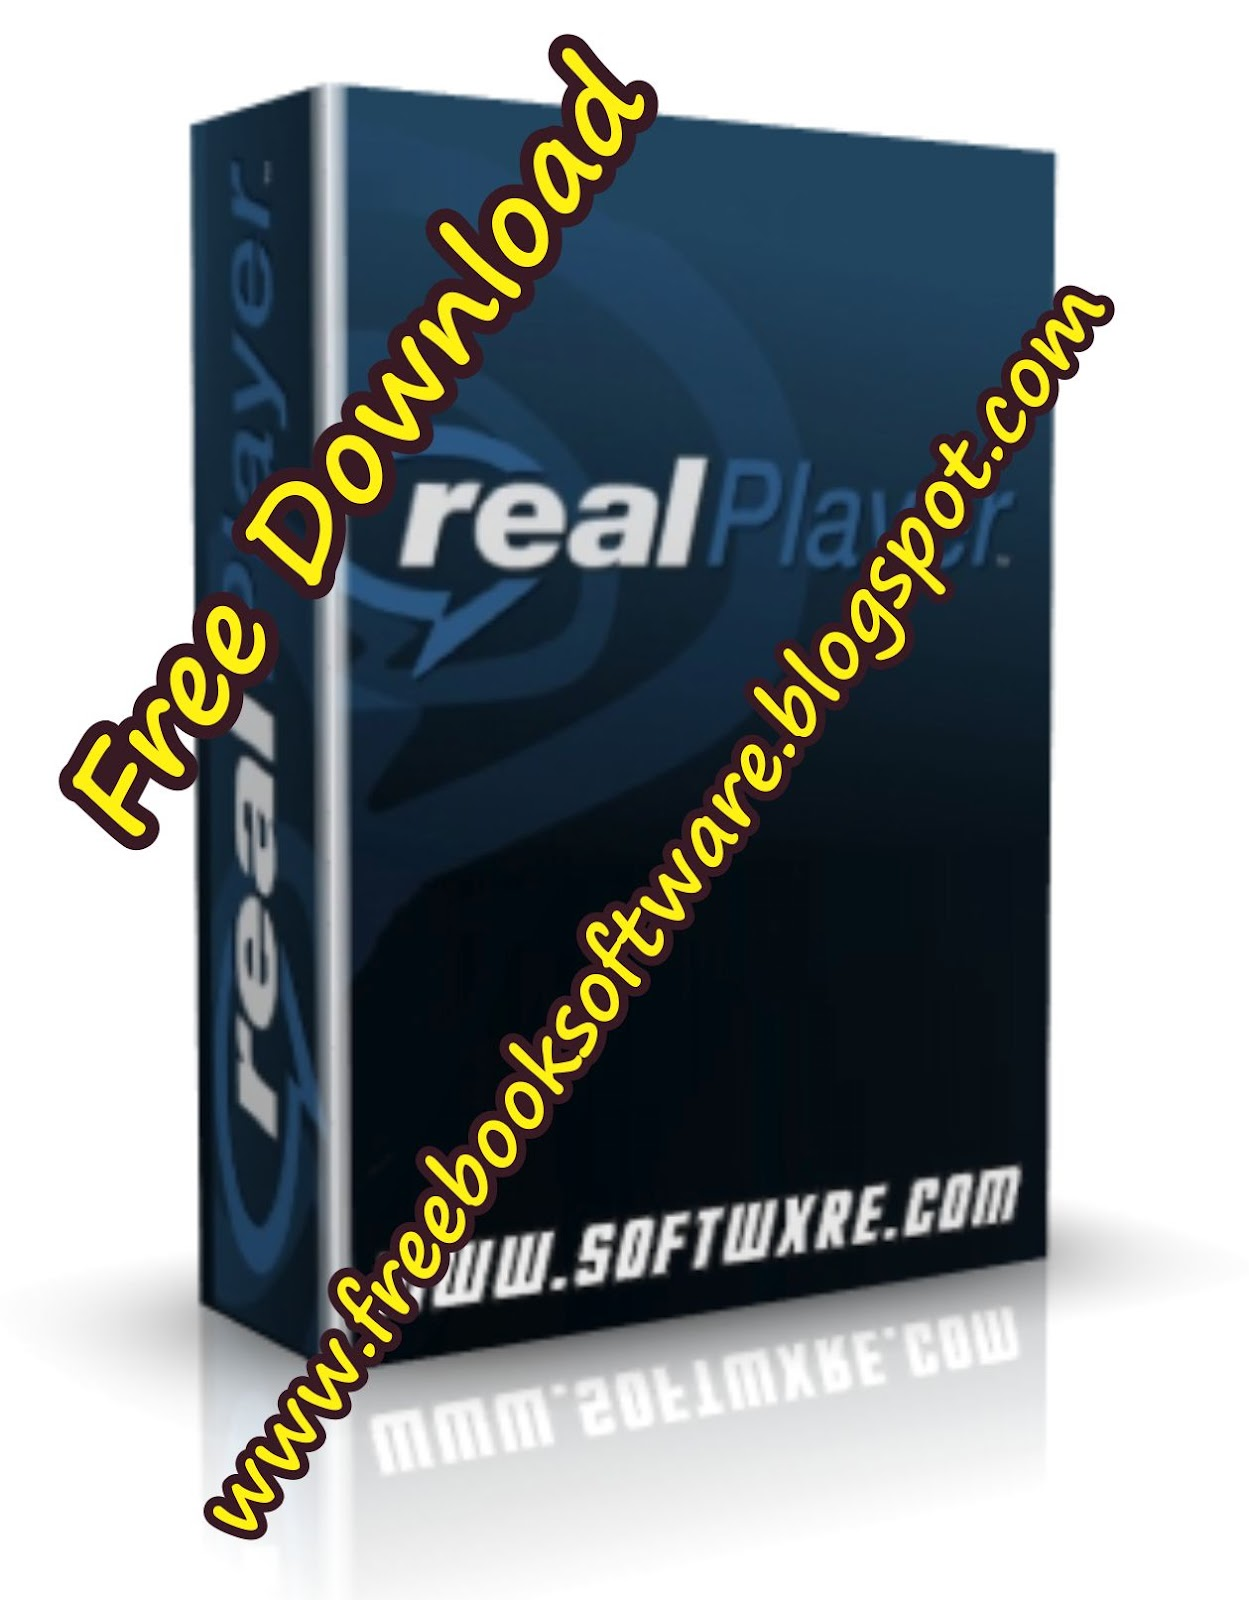 Download free games and softwares: realplayer gold plus 11 with.